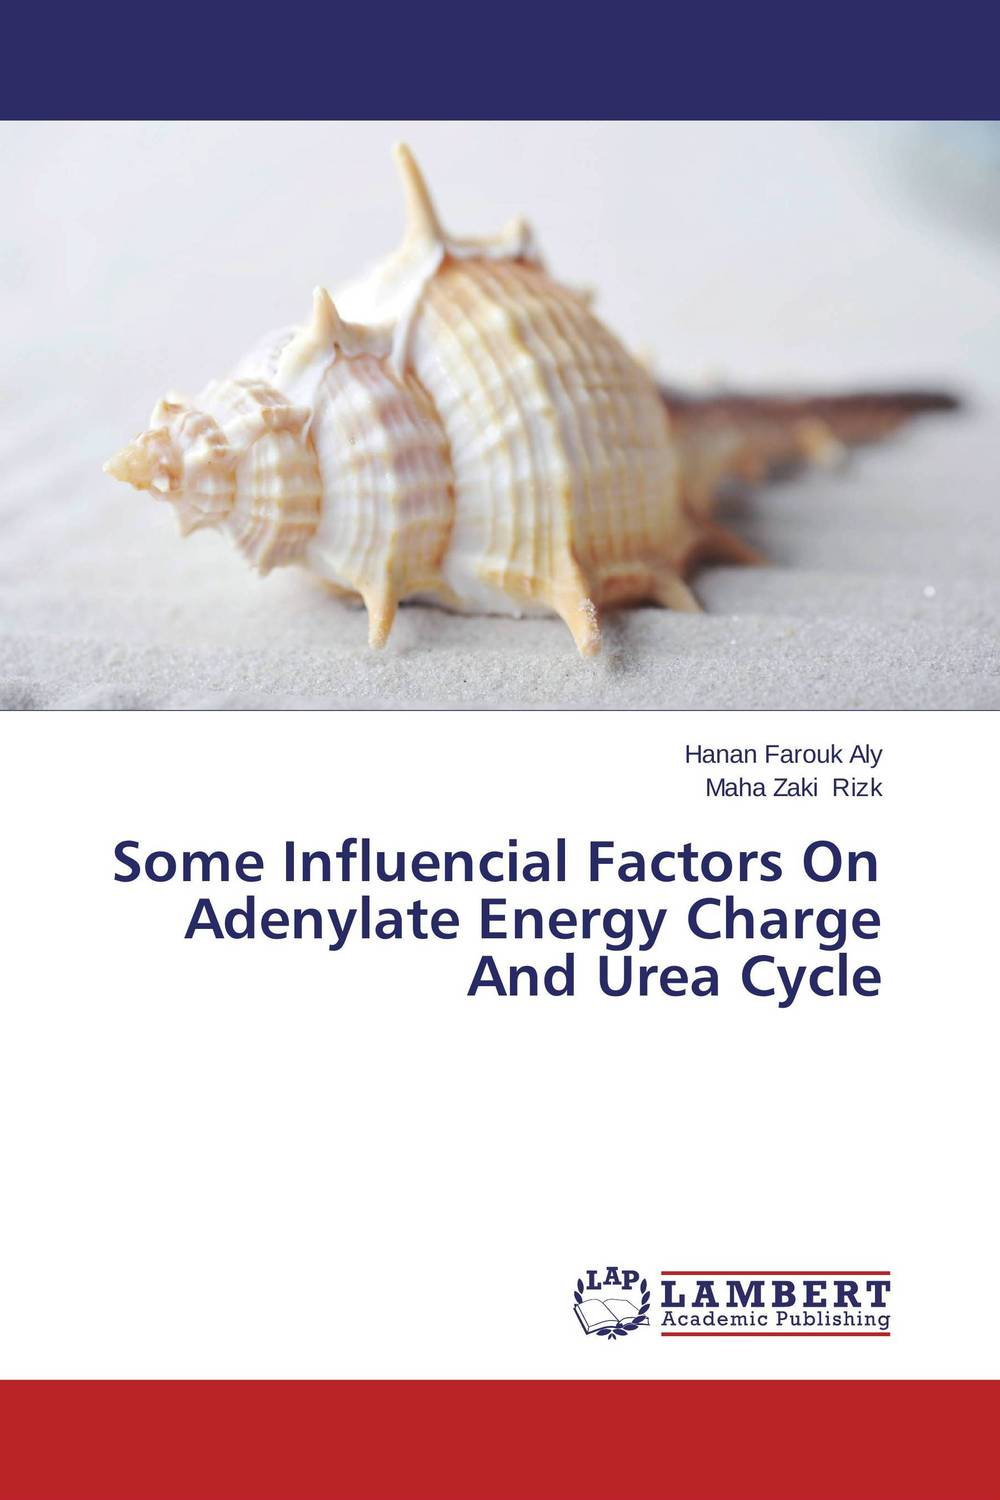 Some Influencial Factors On Adenylate Energy Charge And Urea Cycle unusual causes of raised serum alanine aminotransferase